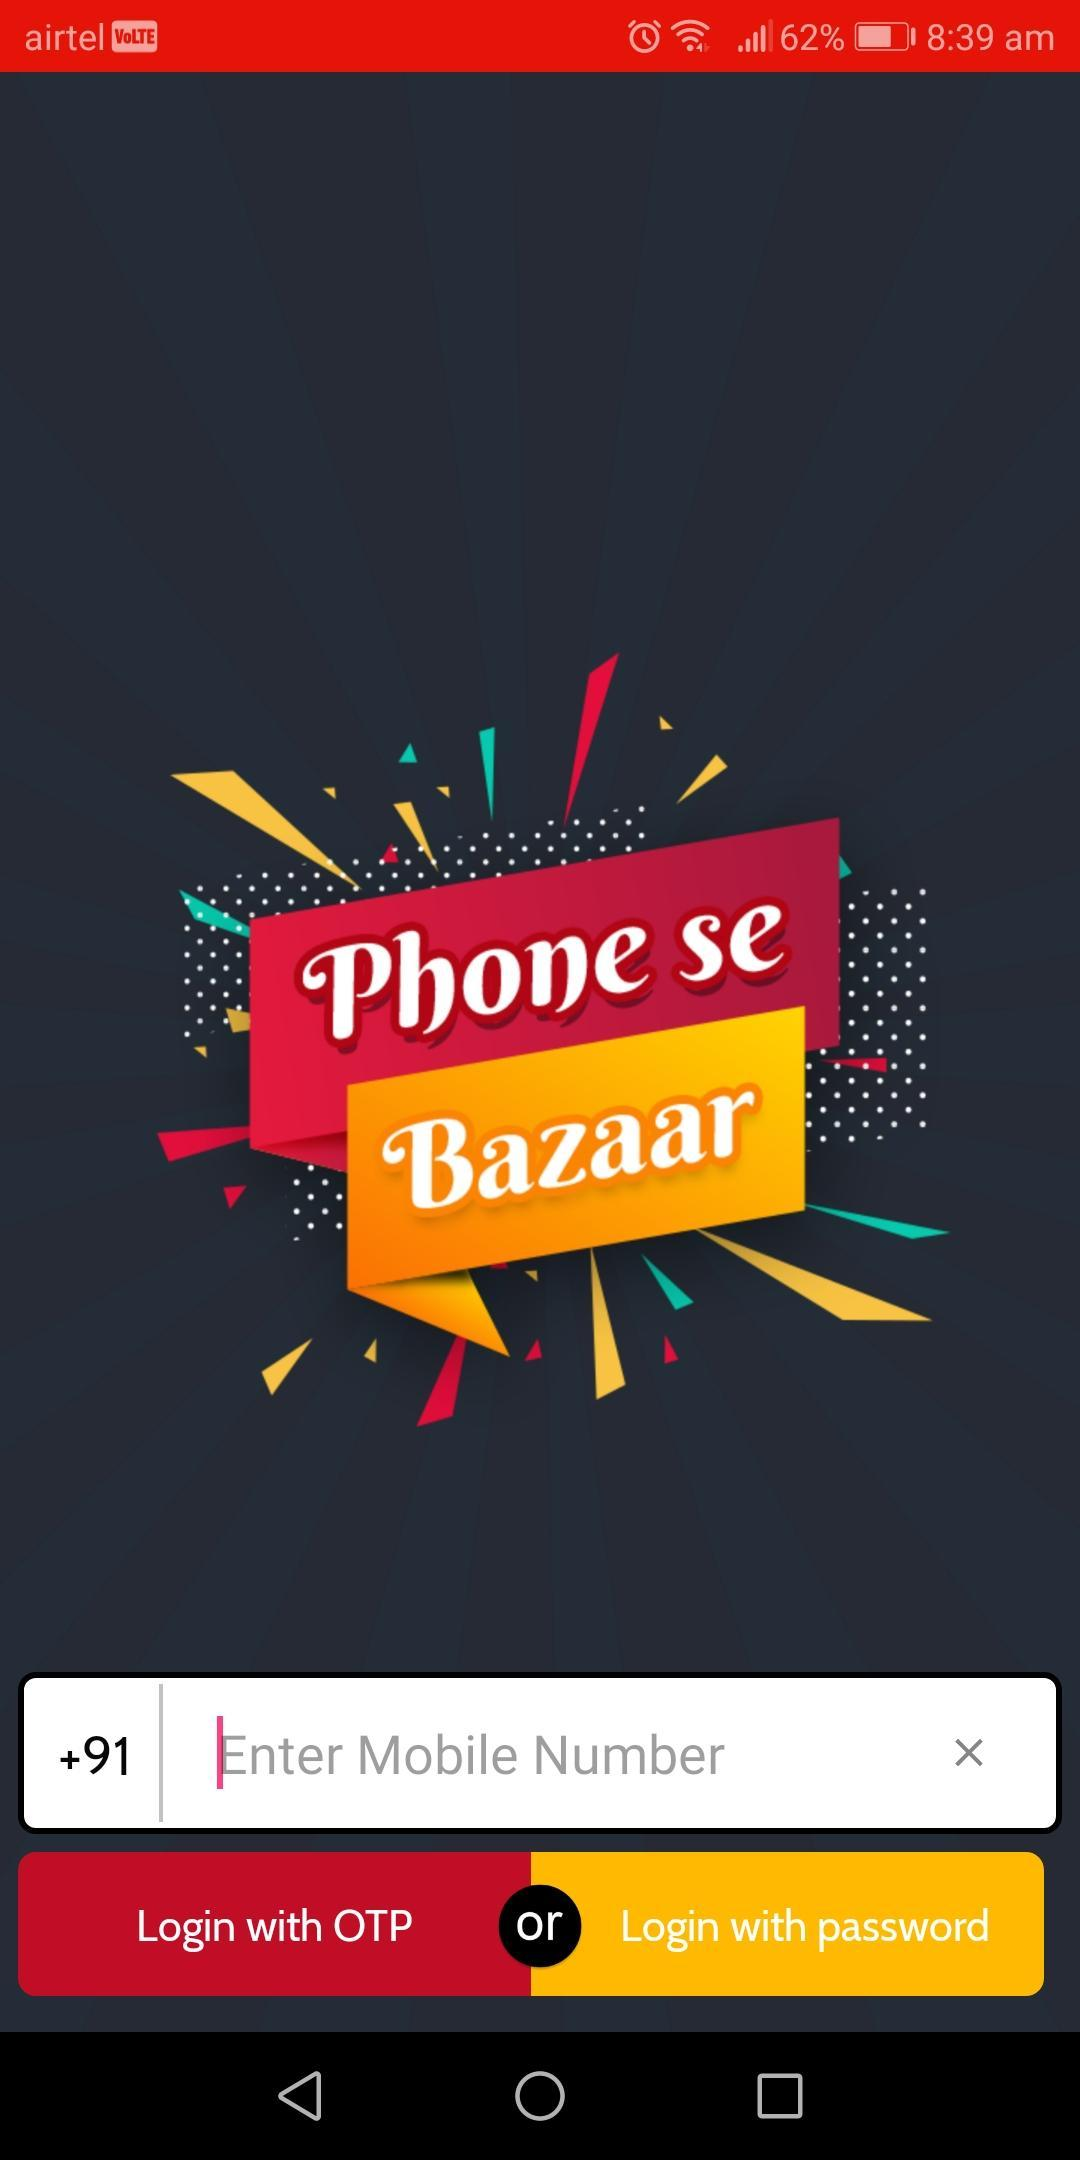 Phone Se Bazaar for Android - APK Download